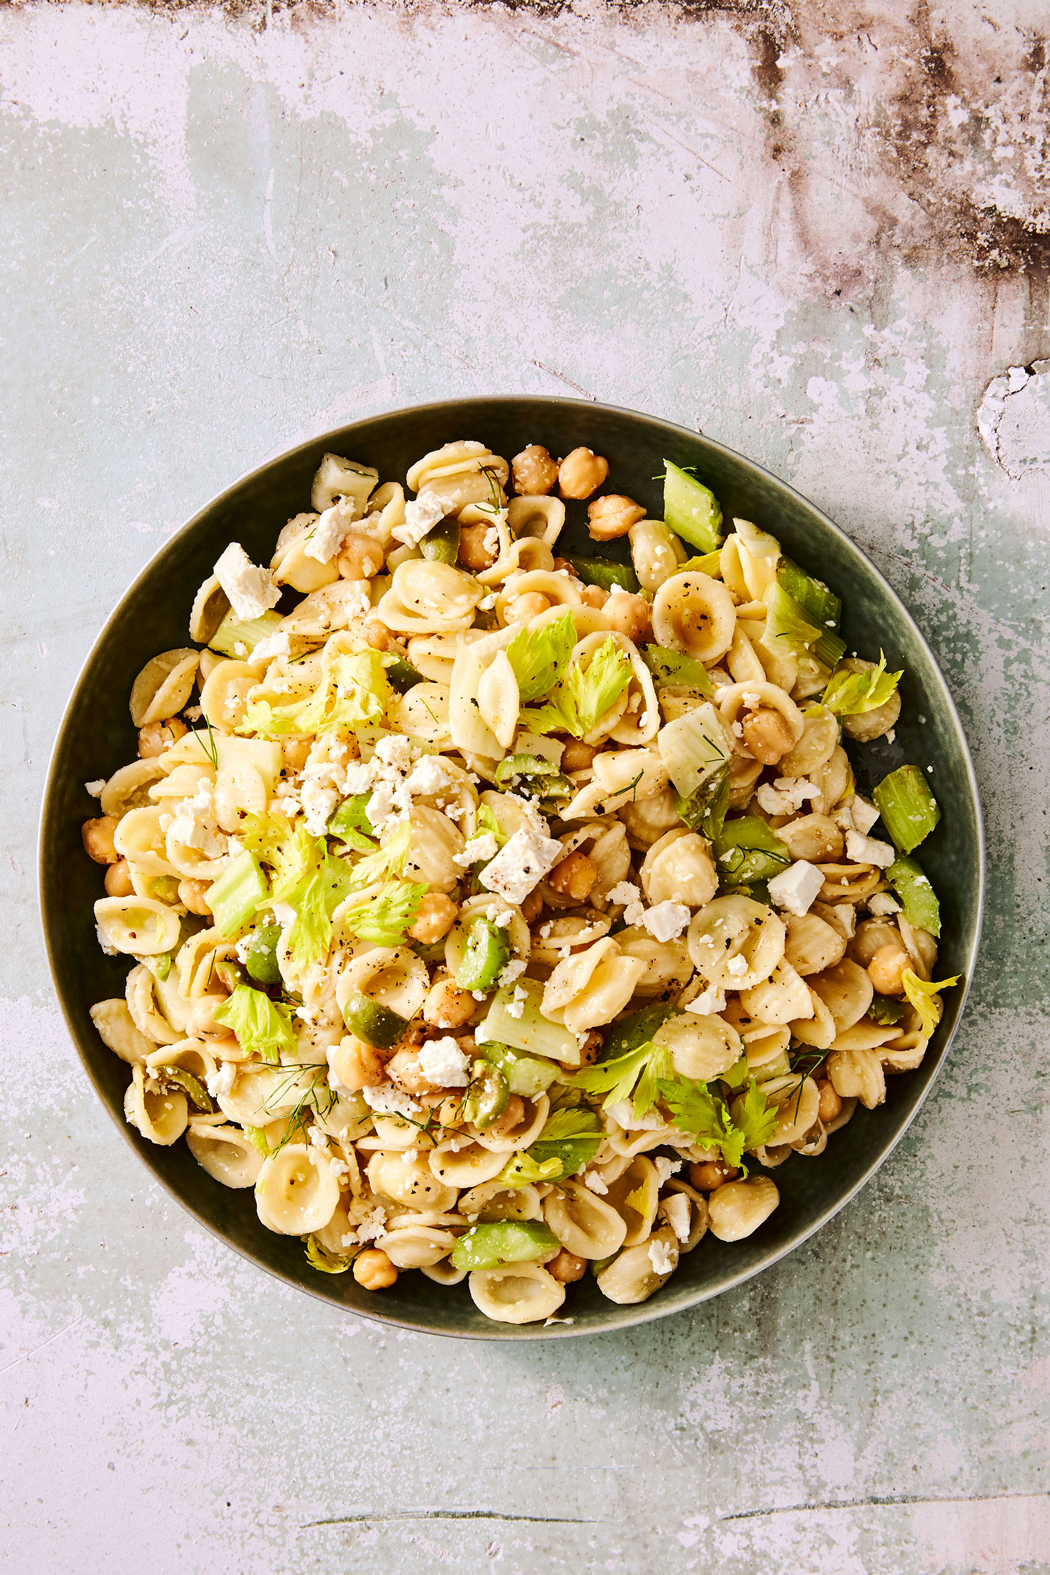 Orecchiette, Celery, and Olive Salad with Ricotta Salata